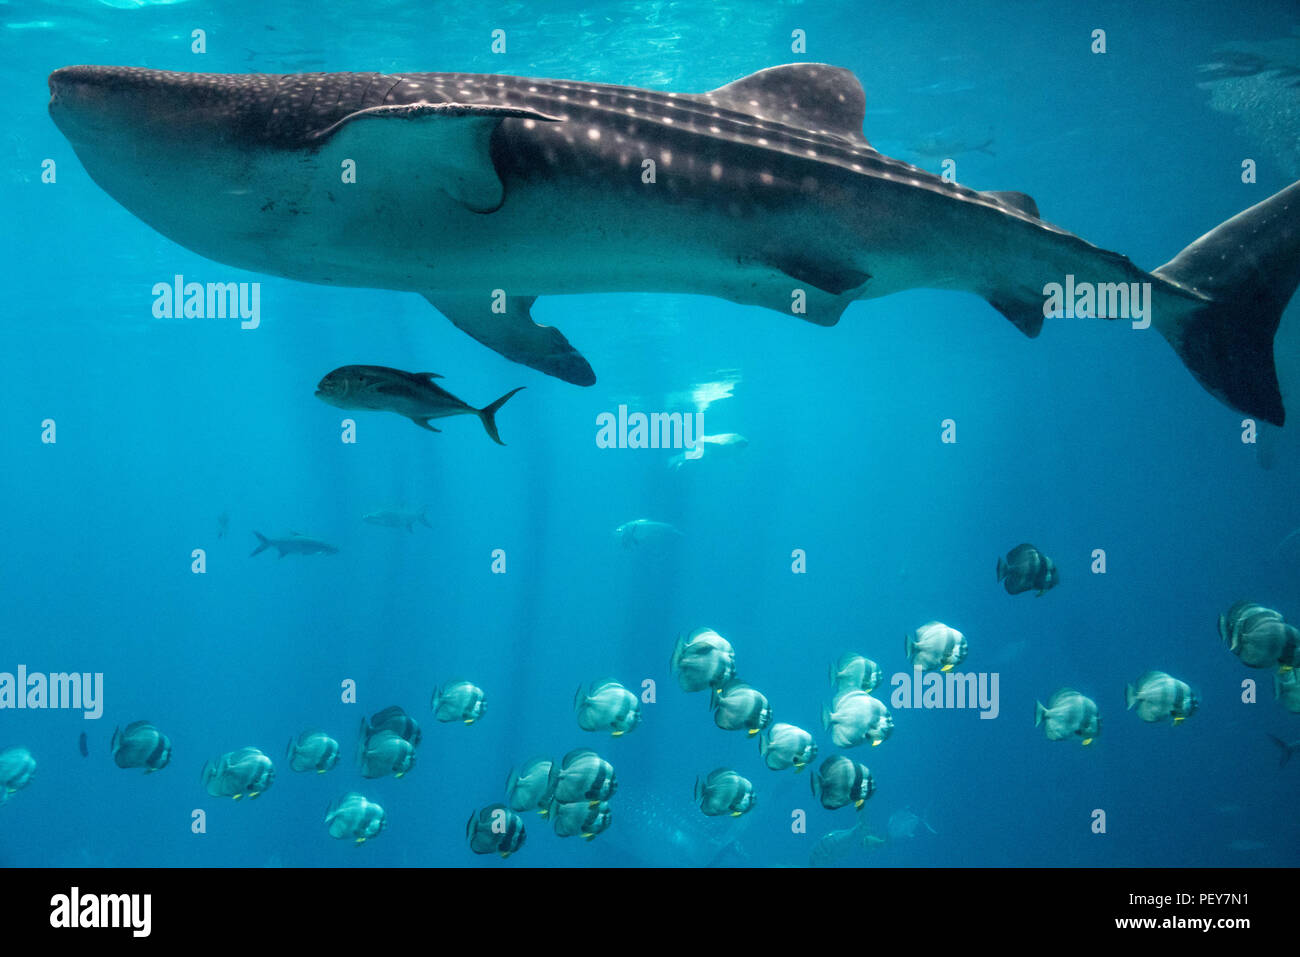 Massive whale shark in the Ocean Voyager tank (containing 6.3-million U.S. gallons of water) at the Georgia Aquarium in Atlanta, Georgia. (USA) - Stock Image